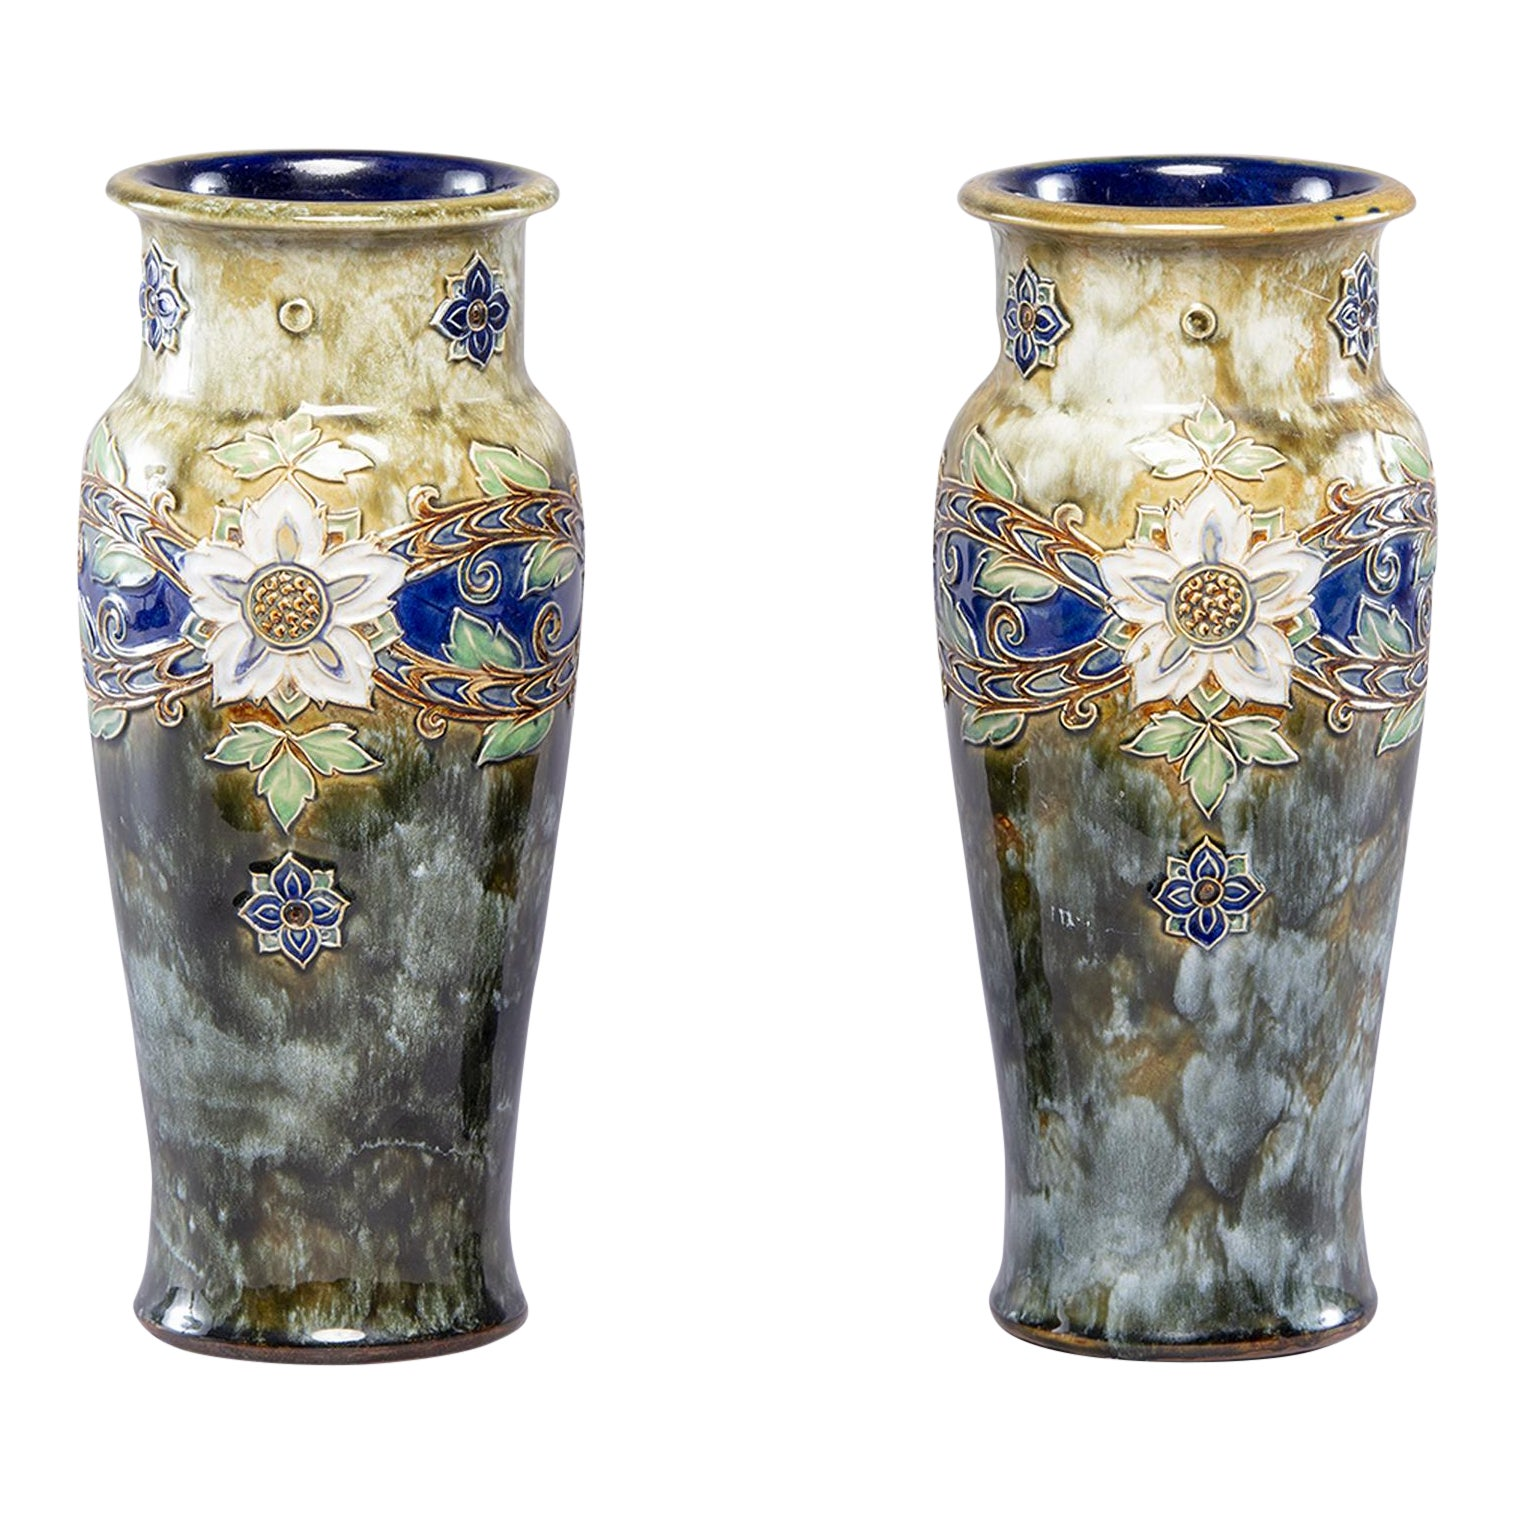 Distinguished Pair Tall Royal Doulton Art Nouveau Lambeth Vases By